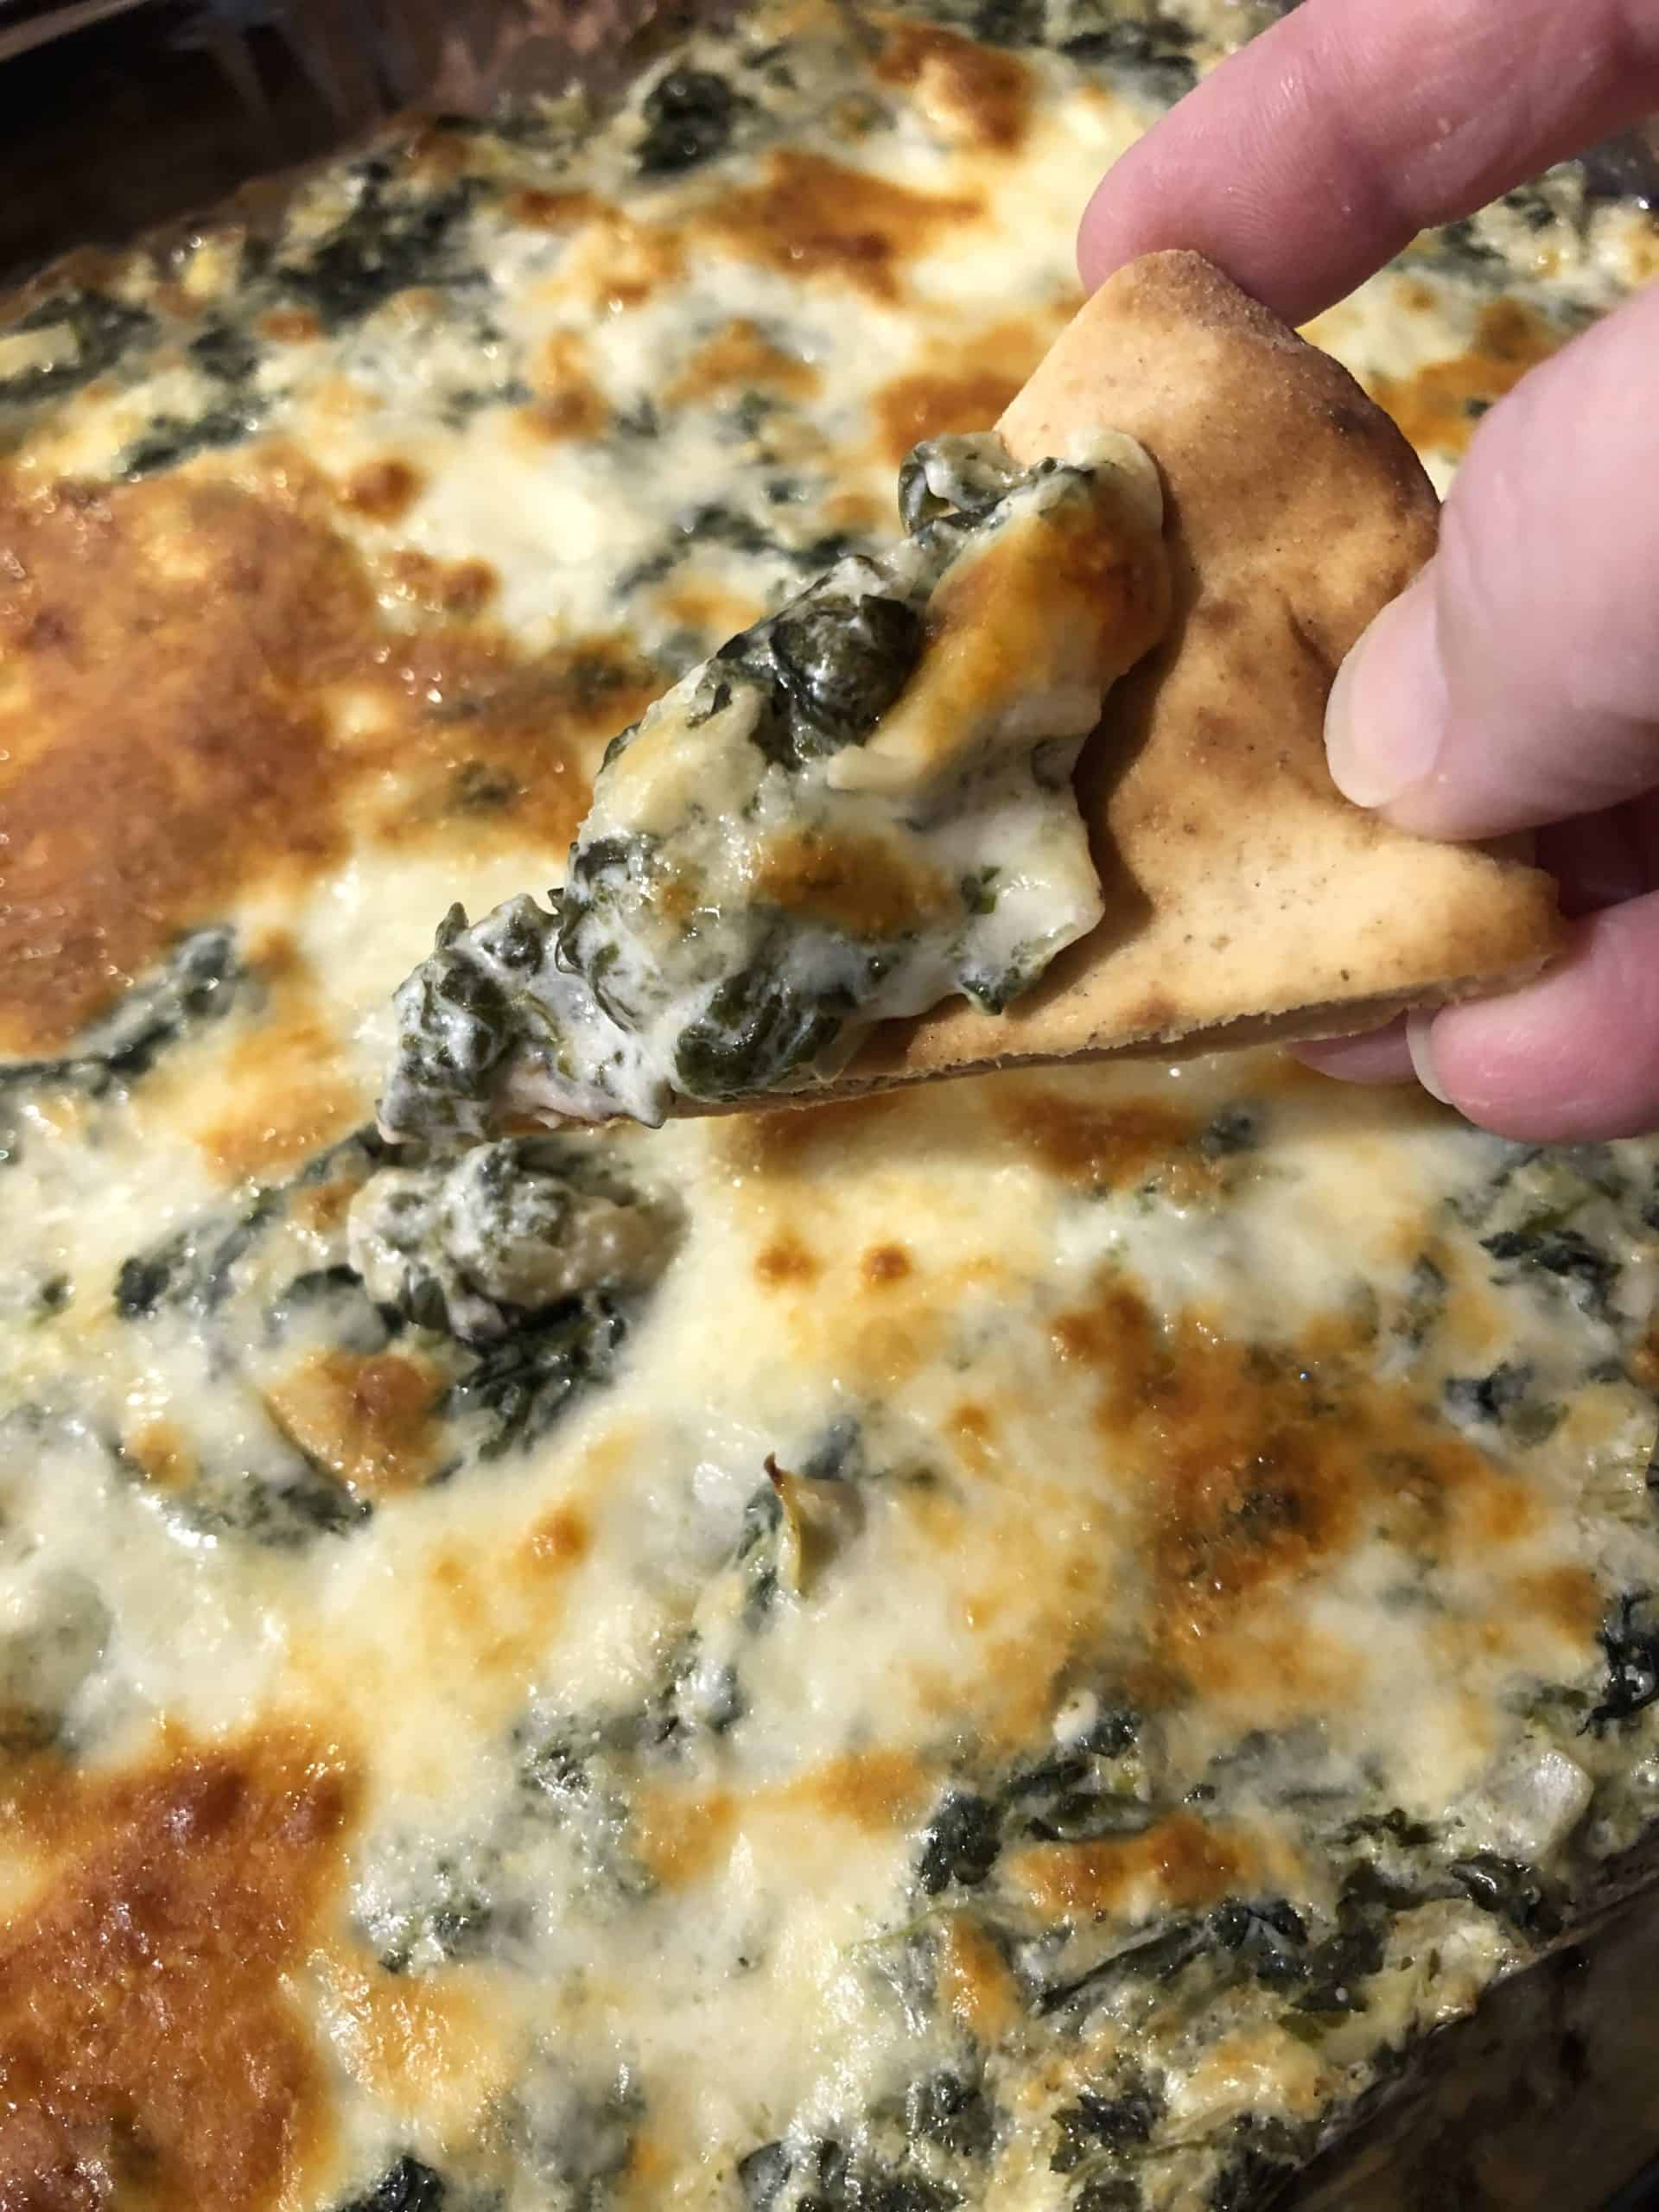 Pita bread dipped in Baked Spinach Artichoke Dip